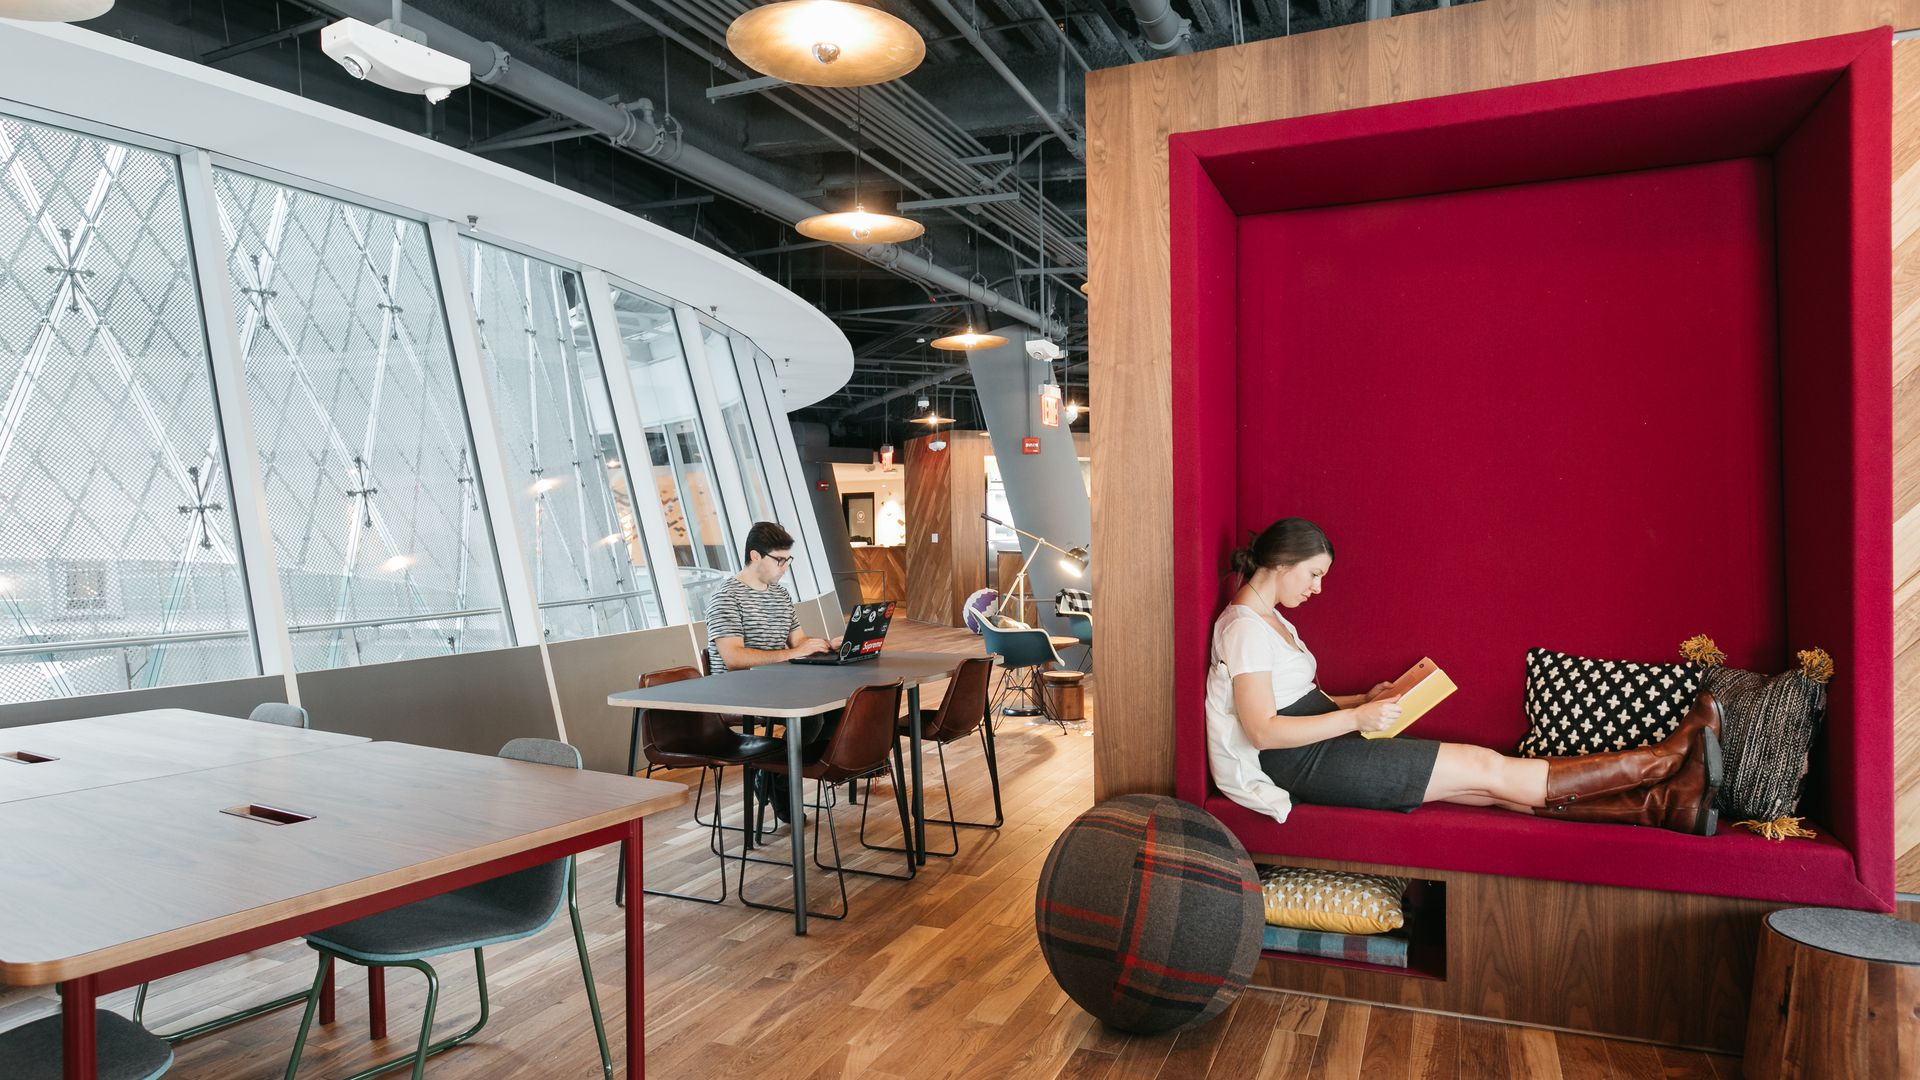 A WeWork co-working spot in New York